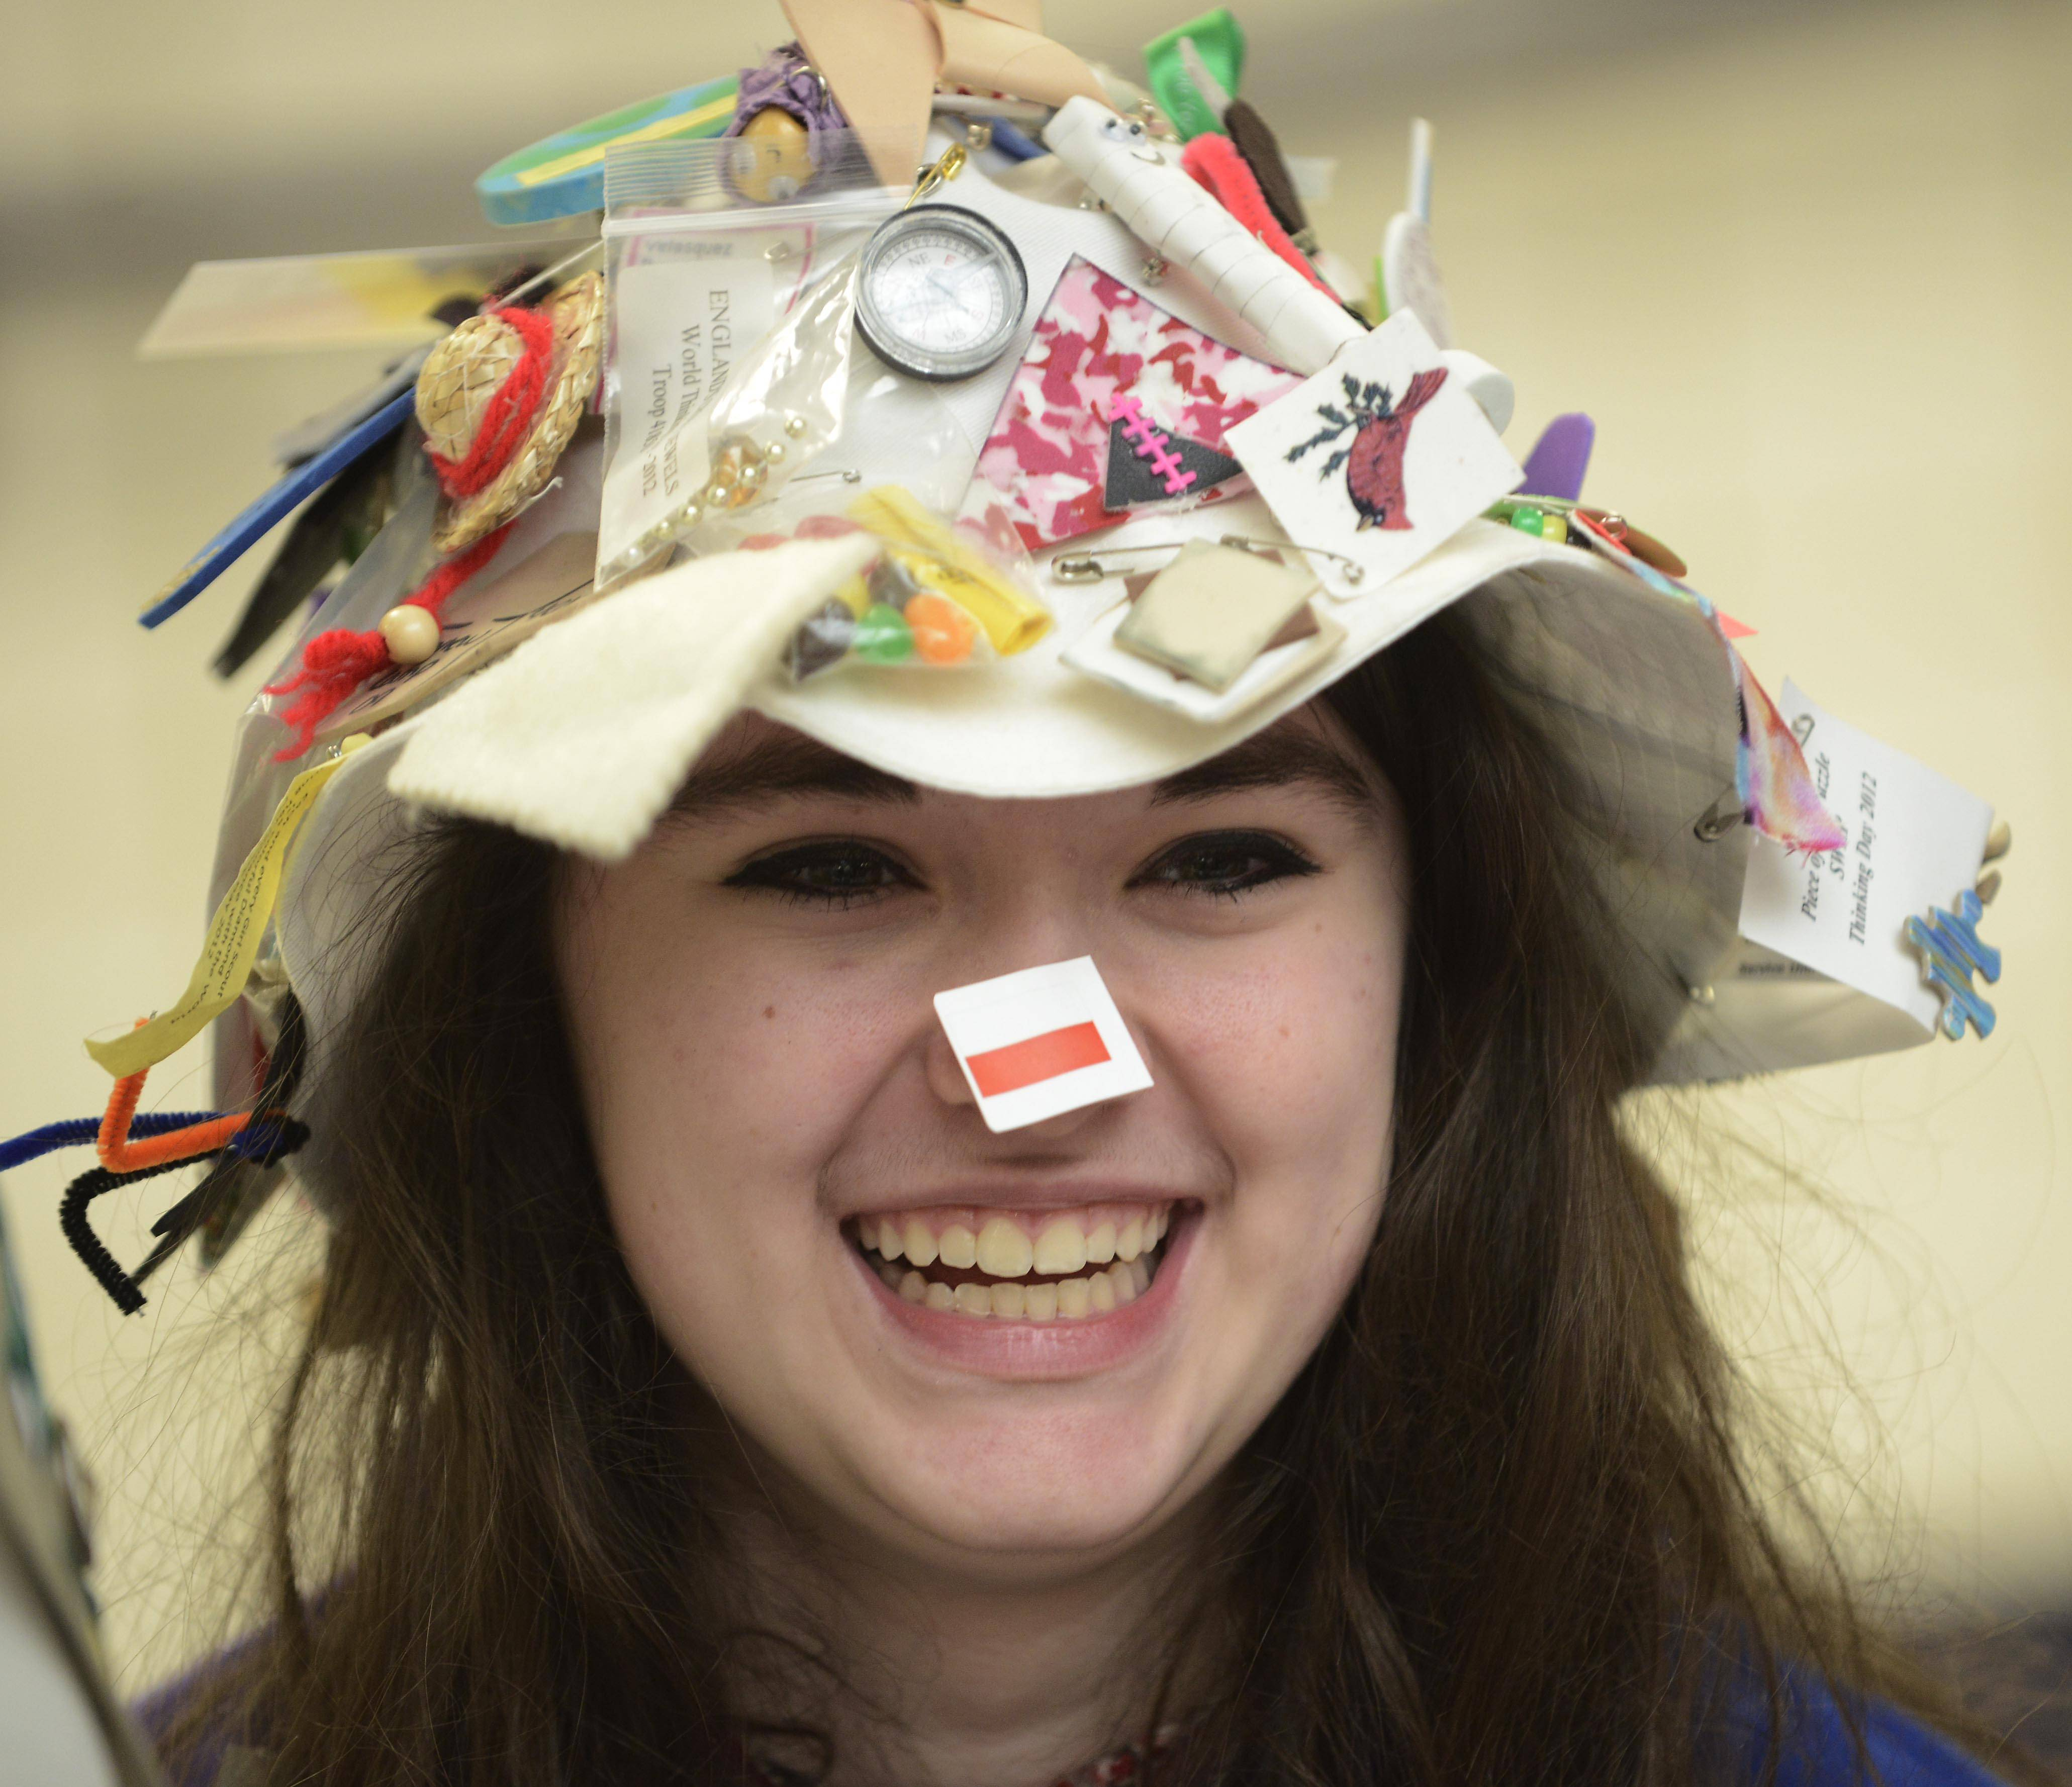 JOE LEWNARD/jlewnard@dailyherald.comKara White, 14, of Hoffman Estates, and Schaumburg Girl Scout Troop 40172, wears a SWAP hat, which displays items she has collected from each station Saturday morning during International Thinking Day, an international festival of sisterhood in the Conant High School cafeteria.